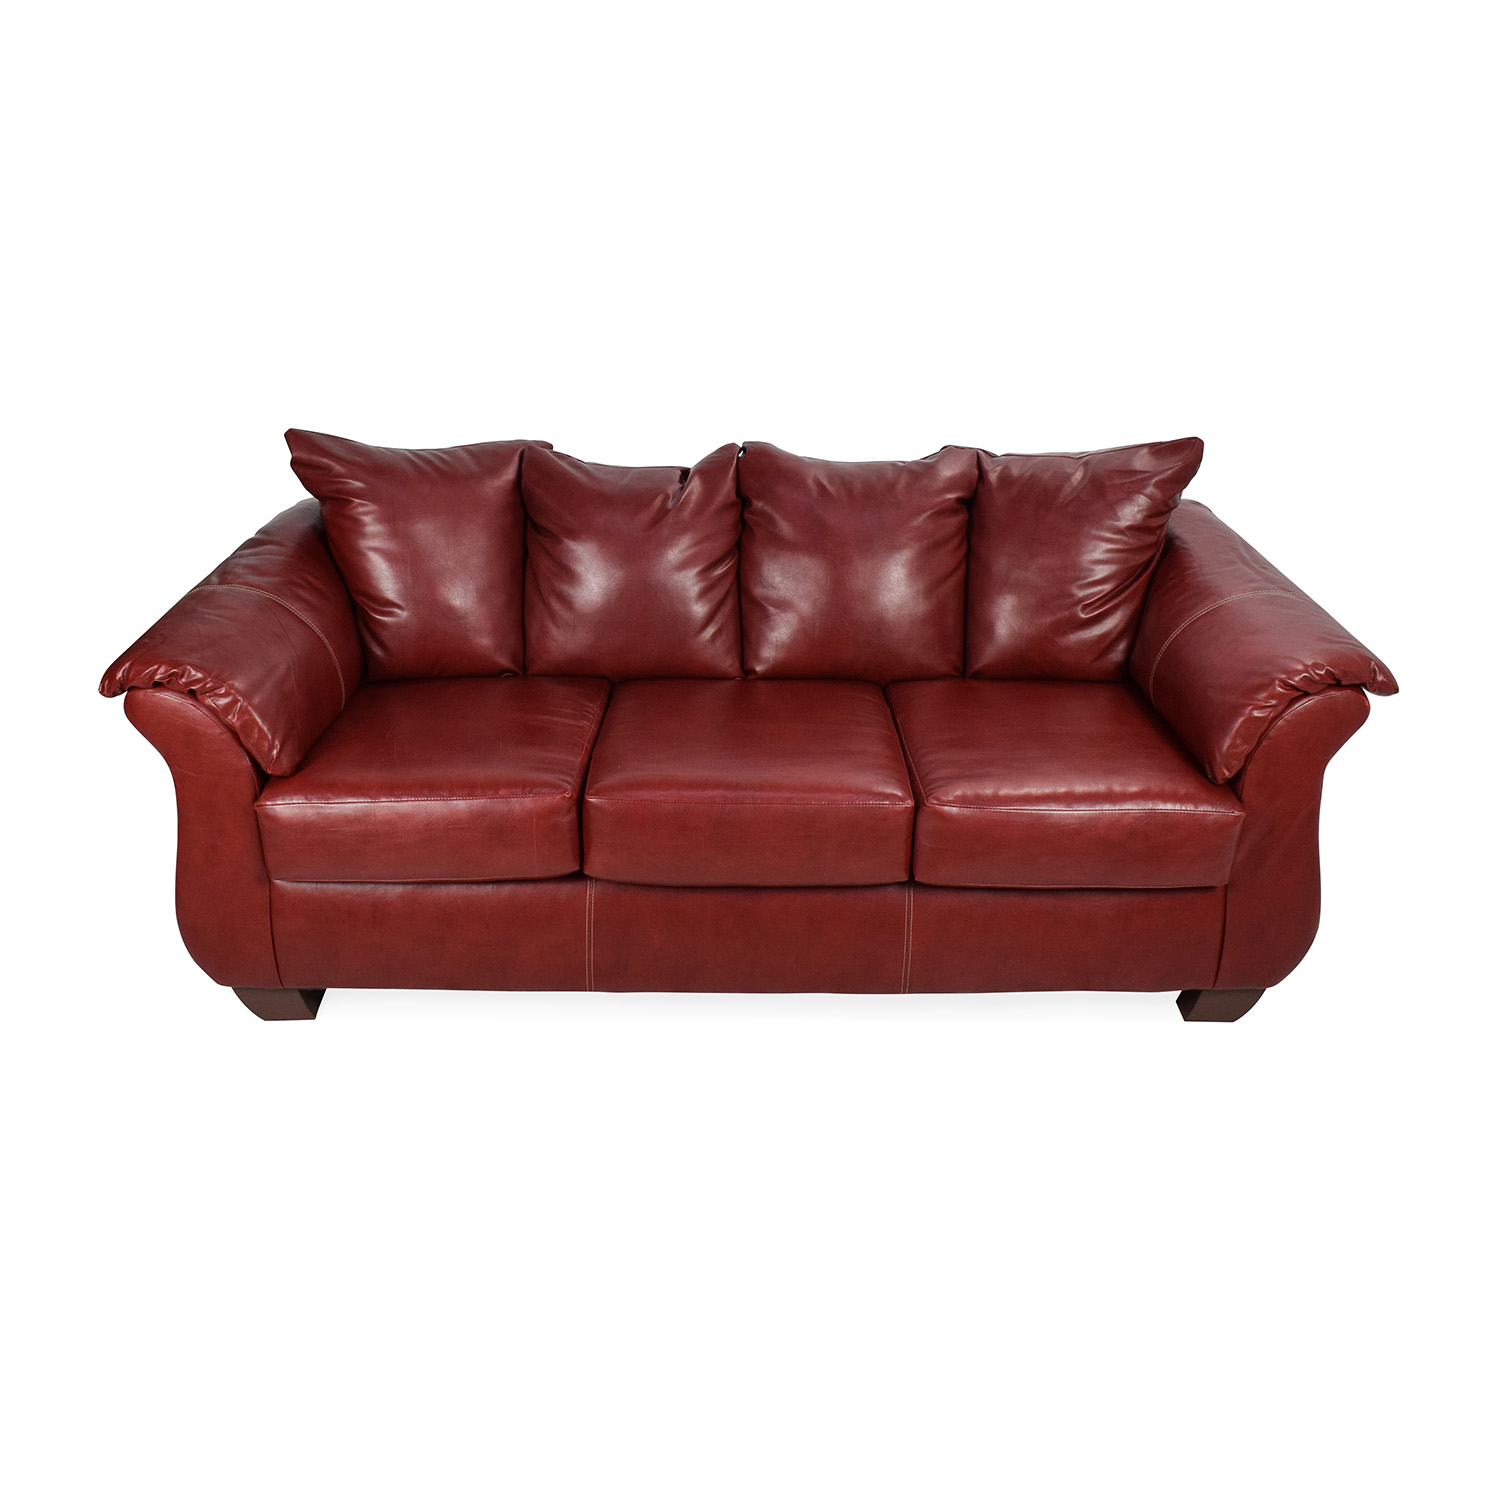 72% OFF - Haymarket Sierra Red Leather Sofa / Sofas